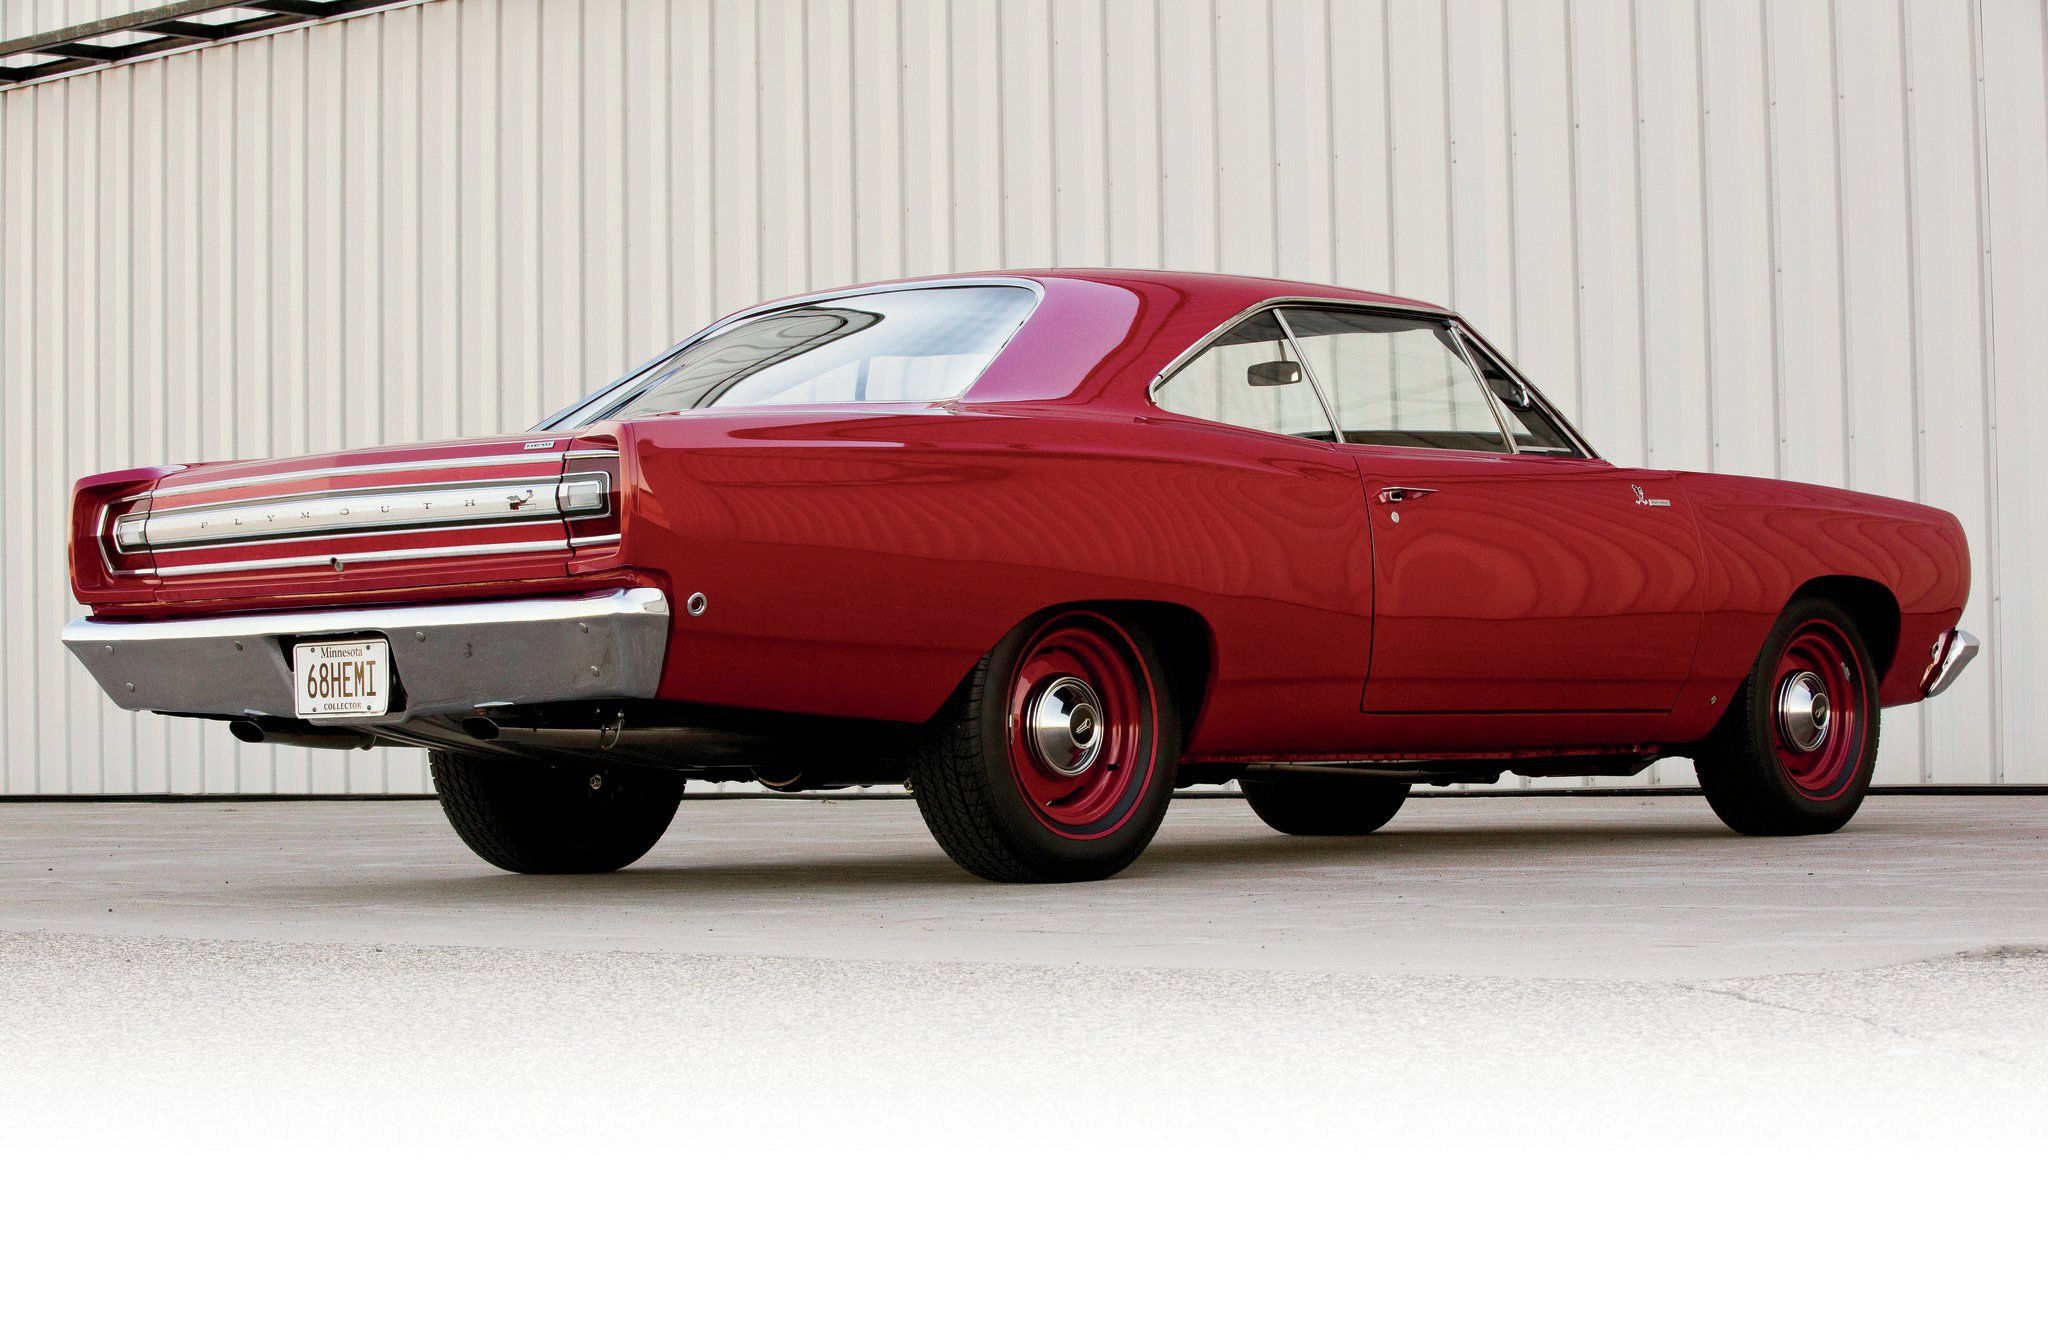 The Road Runner, introduced for 1968, was based on the redesigned '68 Belvedere. The car initially came as a two-door coupe post car, while a two-door pillarless hardtop version—like this car—was introduced midyear. There were 840 Hemi coupes and 169 Hemi hardtops built. Of those hardtop cars, 108 were four-speeds and 61 automatics.